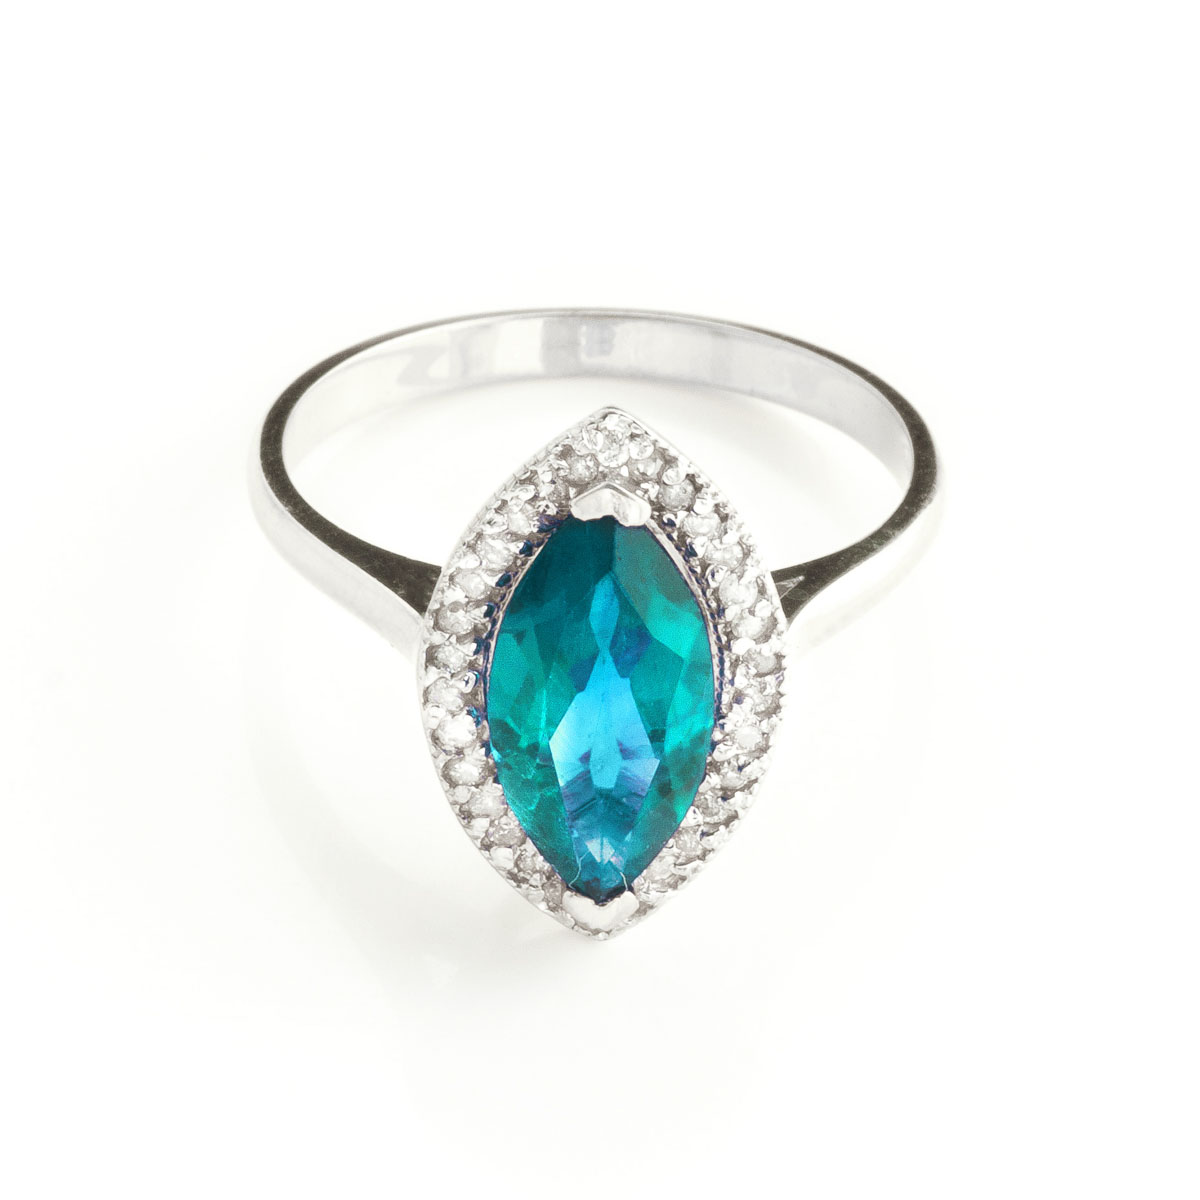 Blue Topaz Halo Ring 2.4 ctw in 9ct White Gold